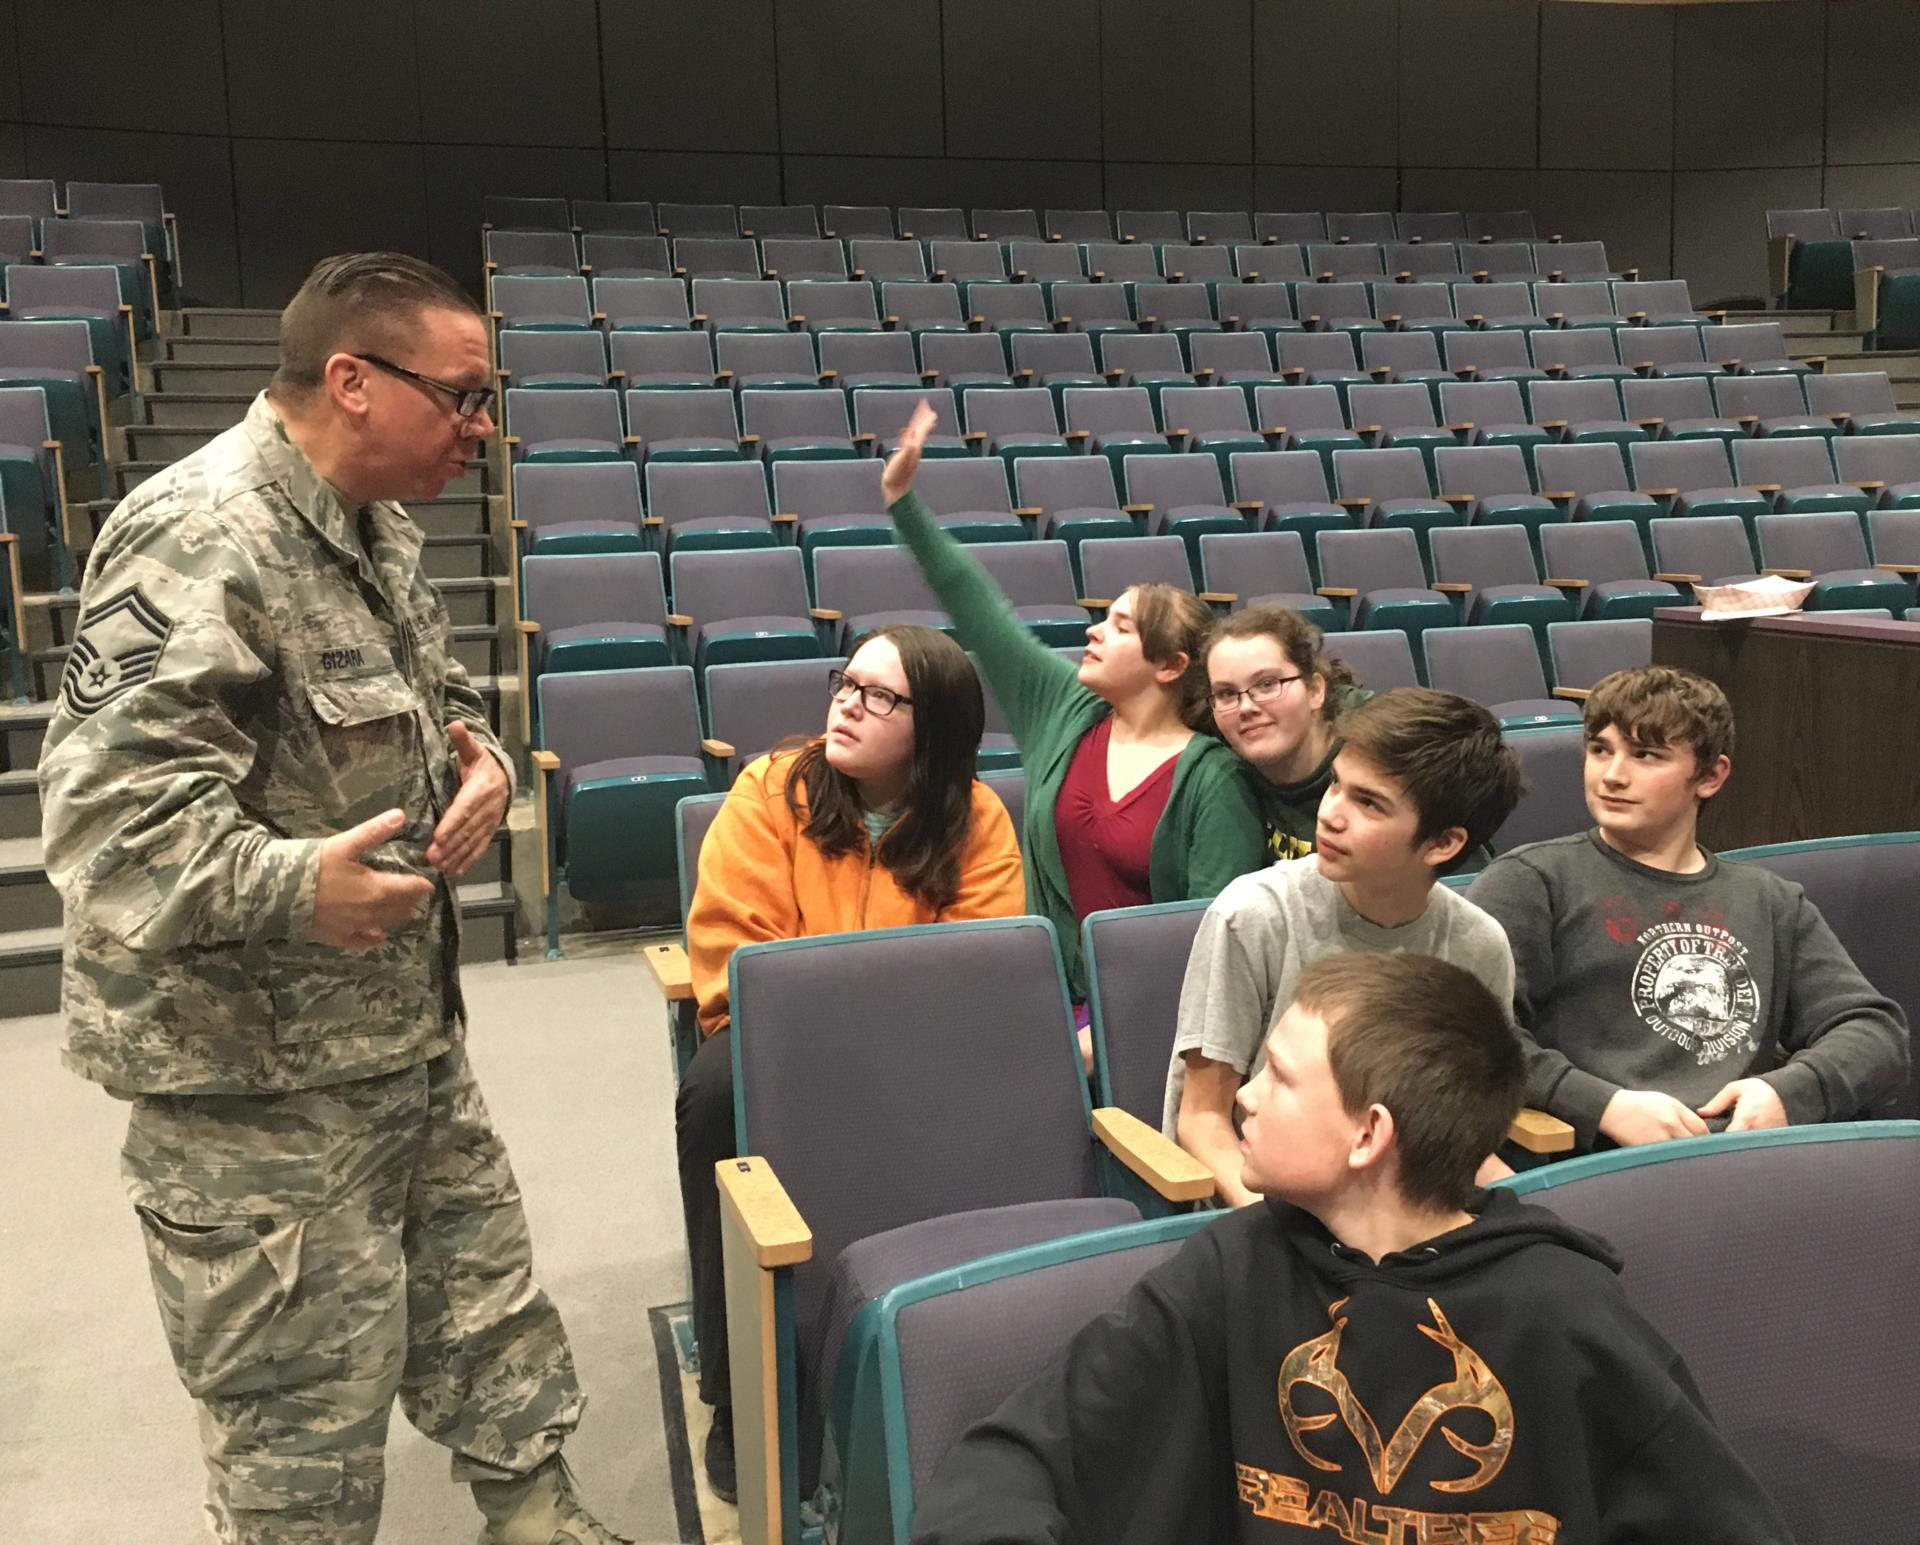 an air national guard sergeant takes questions from students